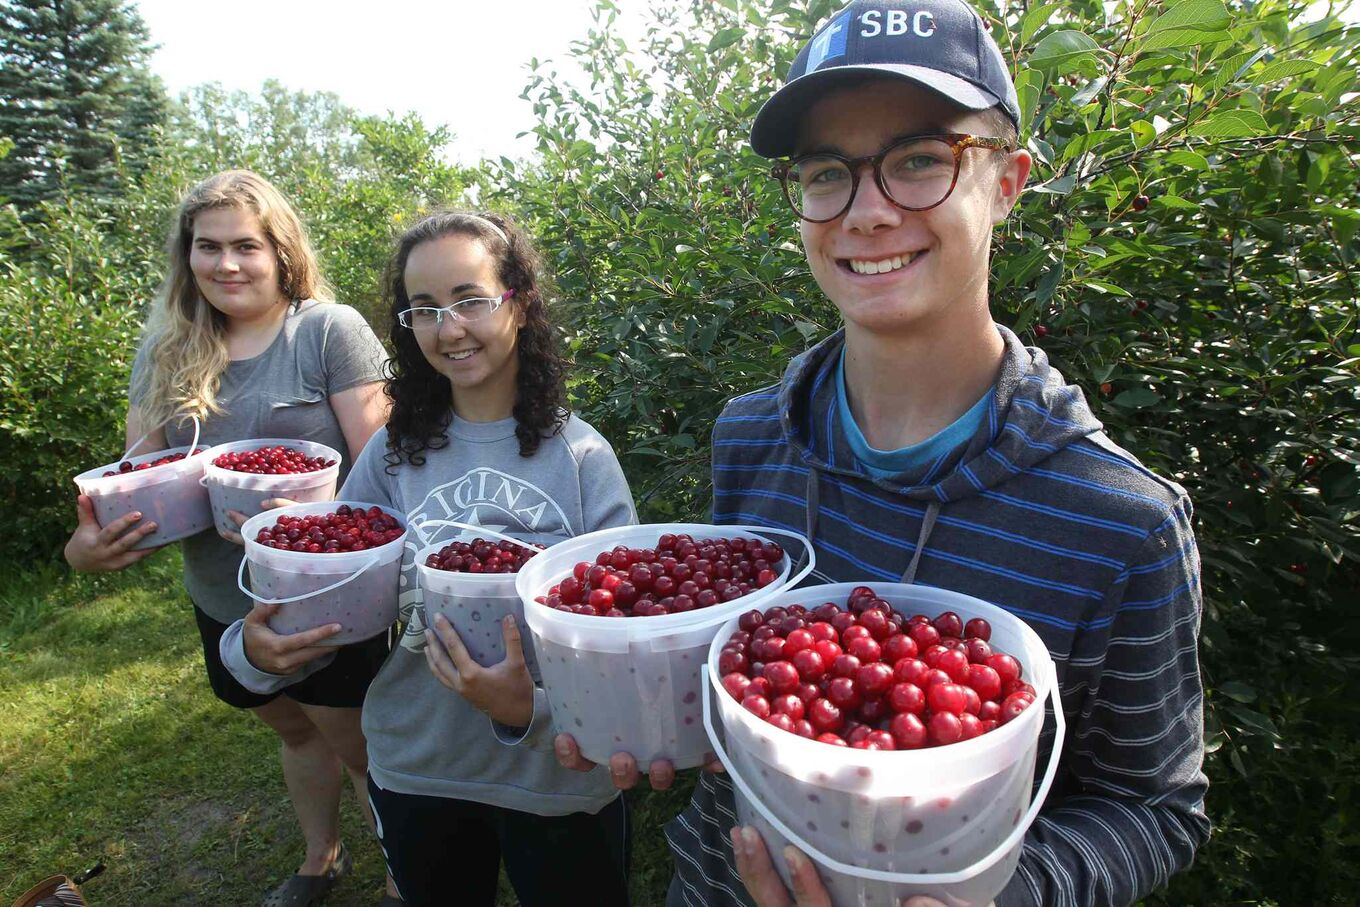 Megan Ronald, Elizabeth Forest and Marcus Loewen with tart cherries picked for client. (Joe Bryksa / Winnipeg Free Press)